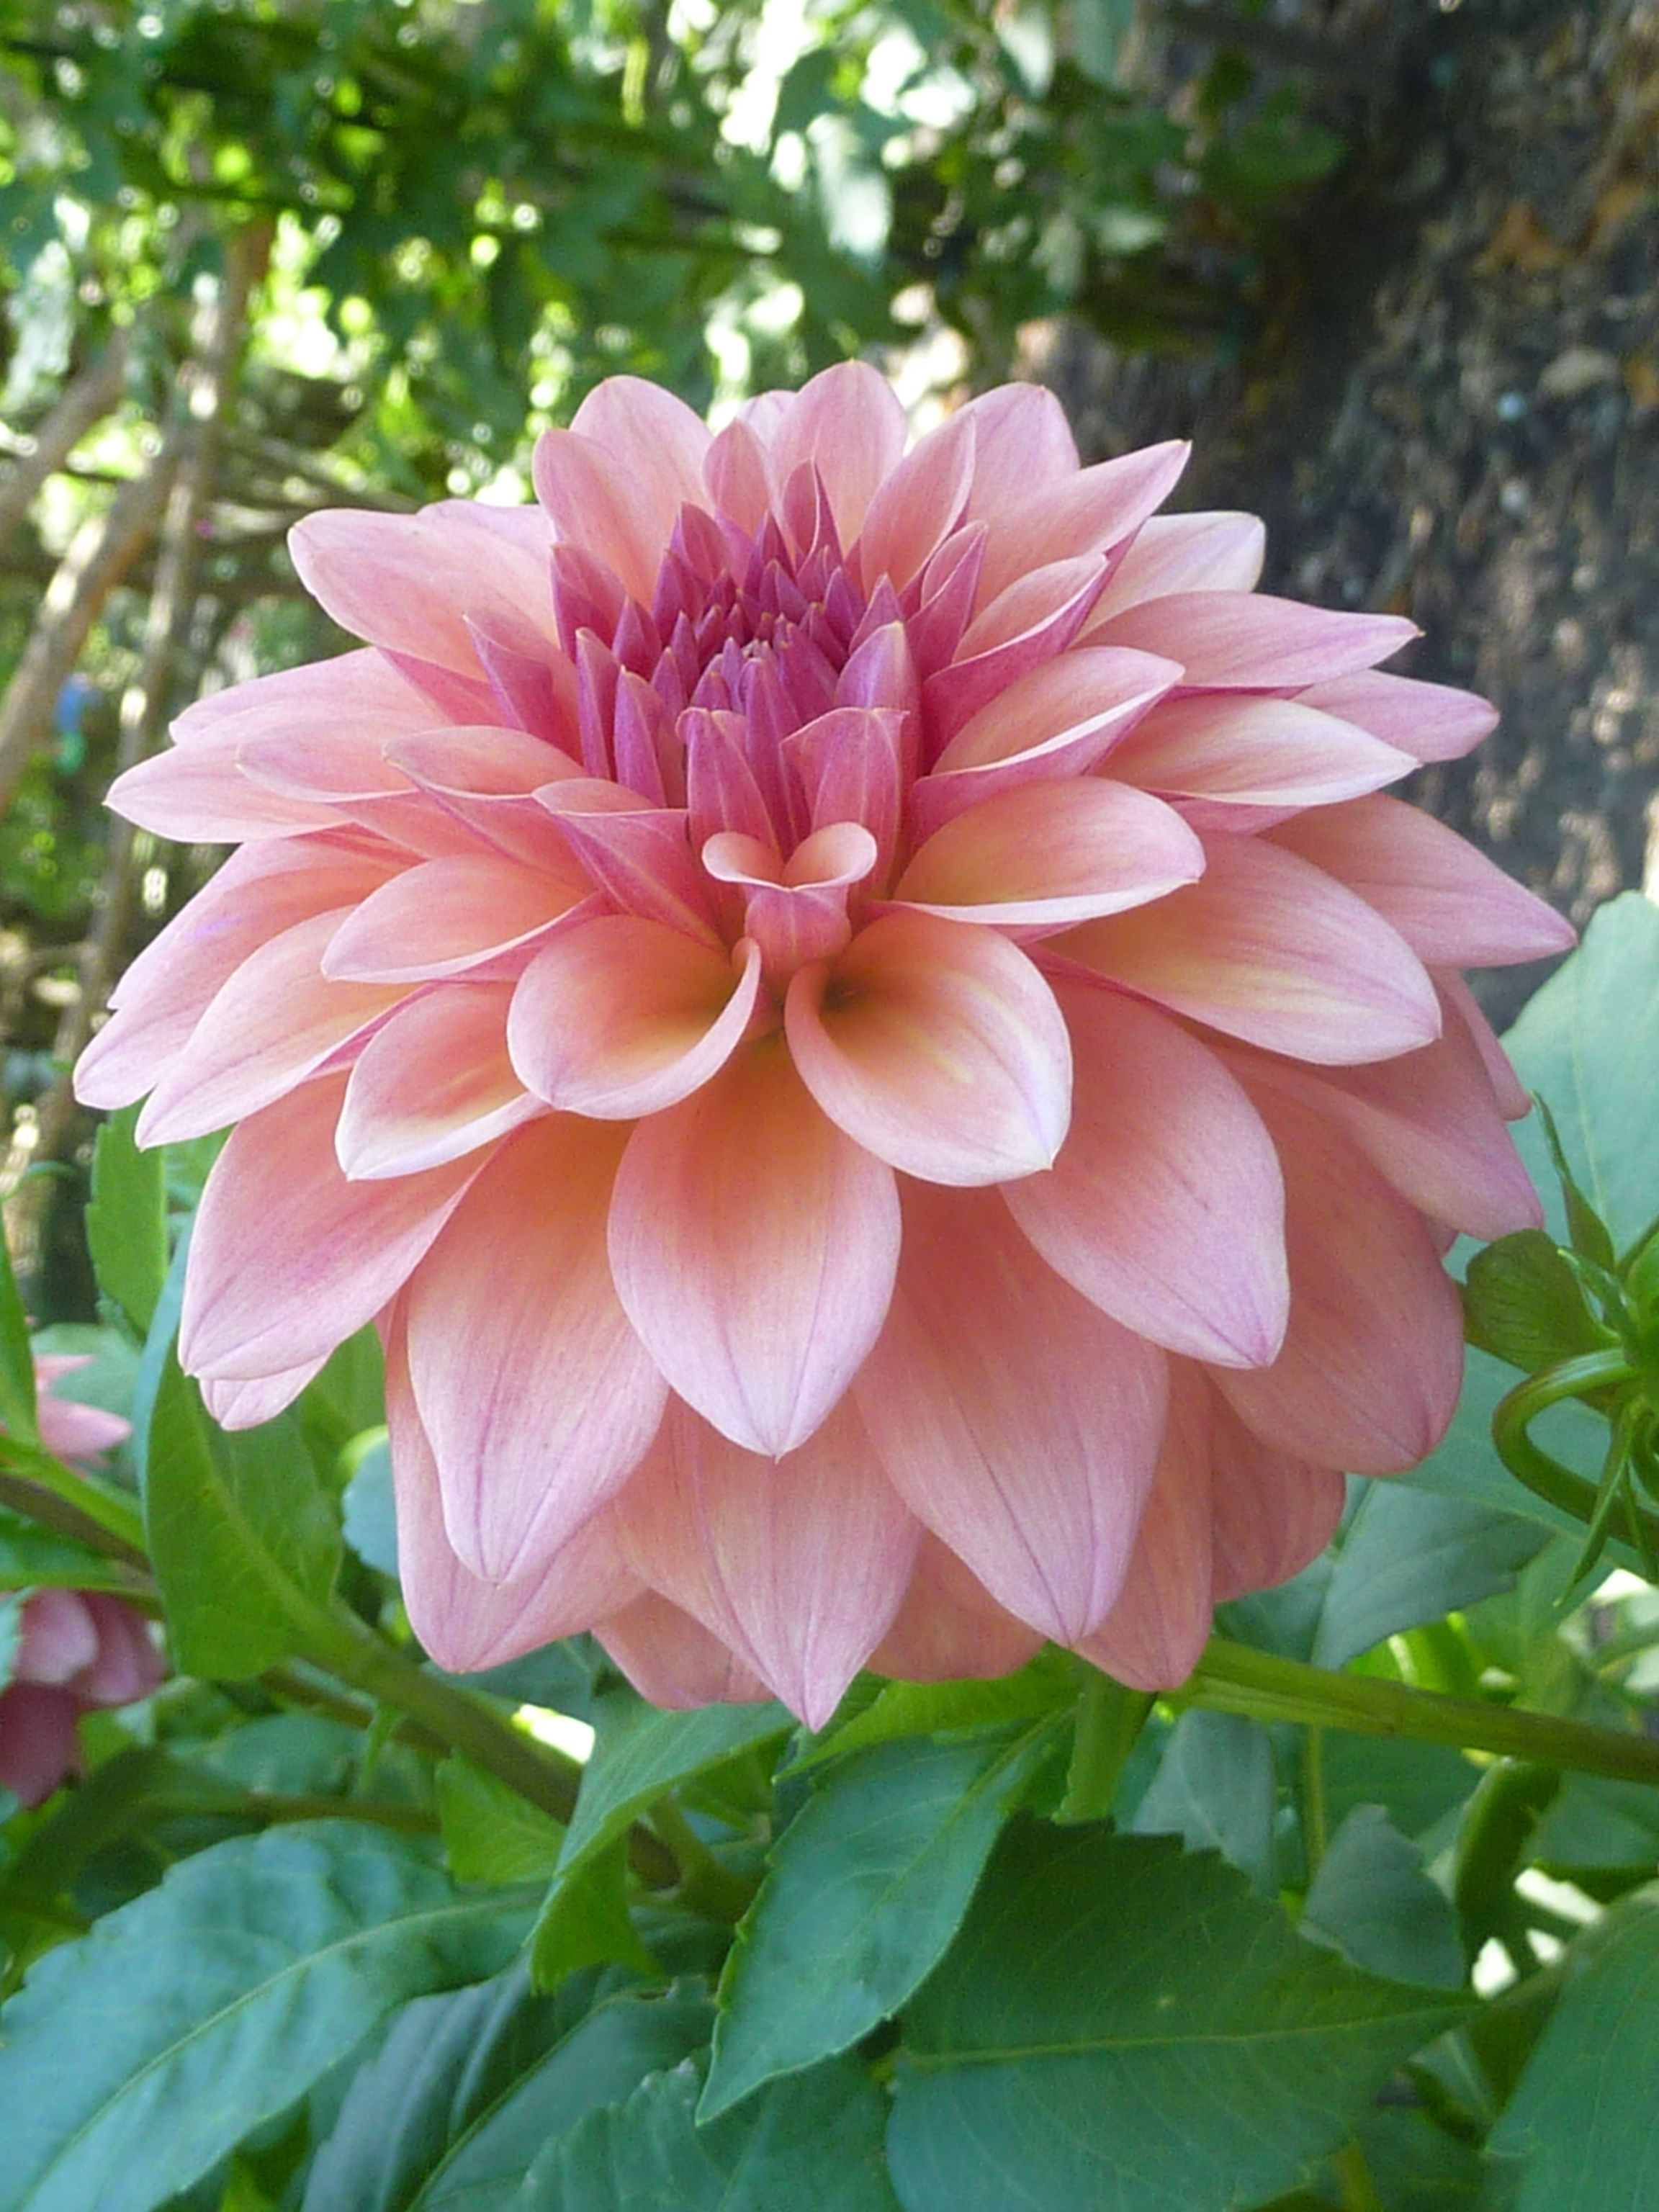 This Is The Perfect Pale Pink Into Mauvy Pink Dahlia Love Beautiful Flowers Dahlia Flower Love Flowers